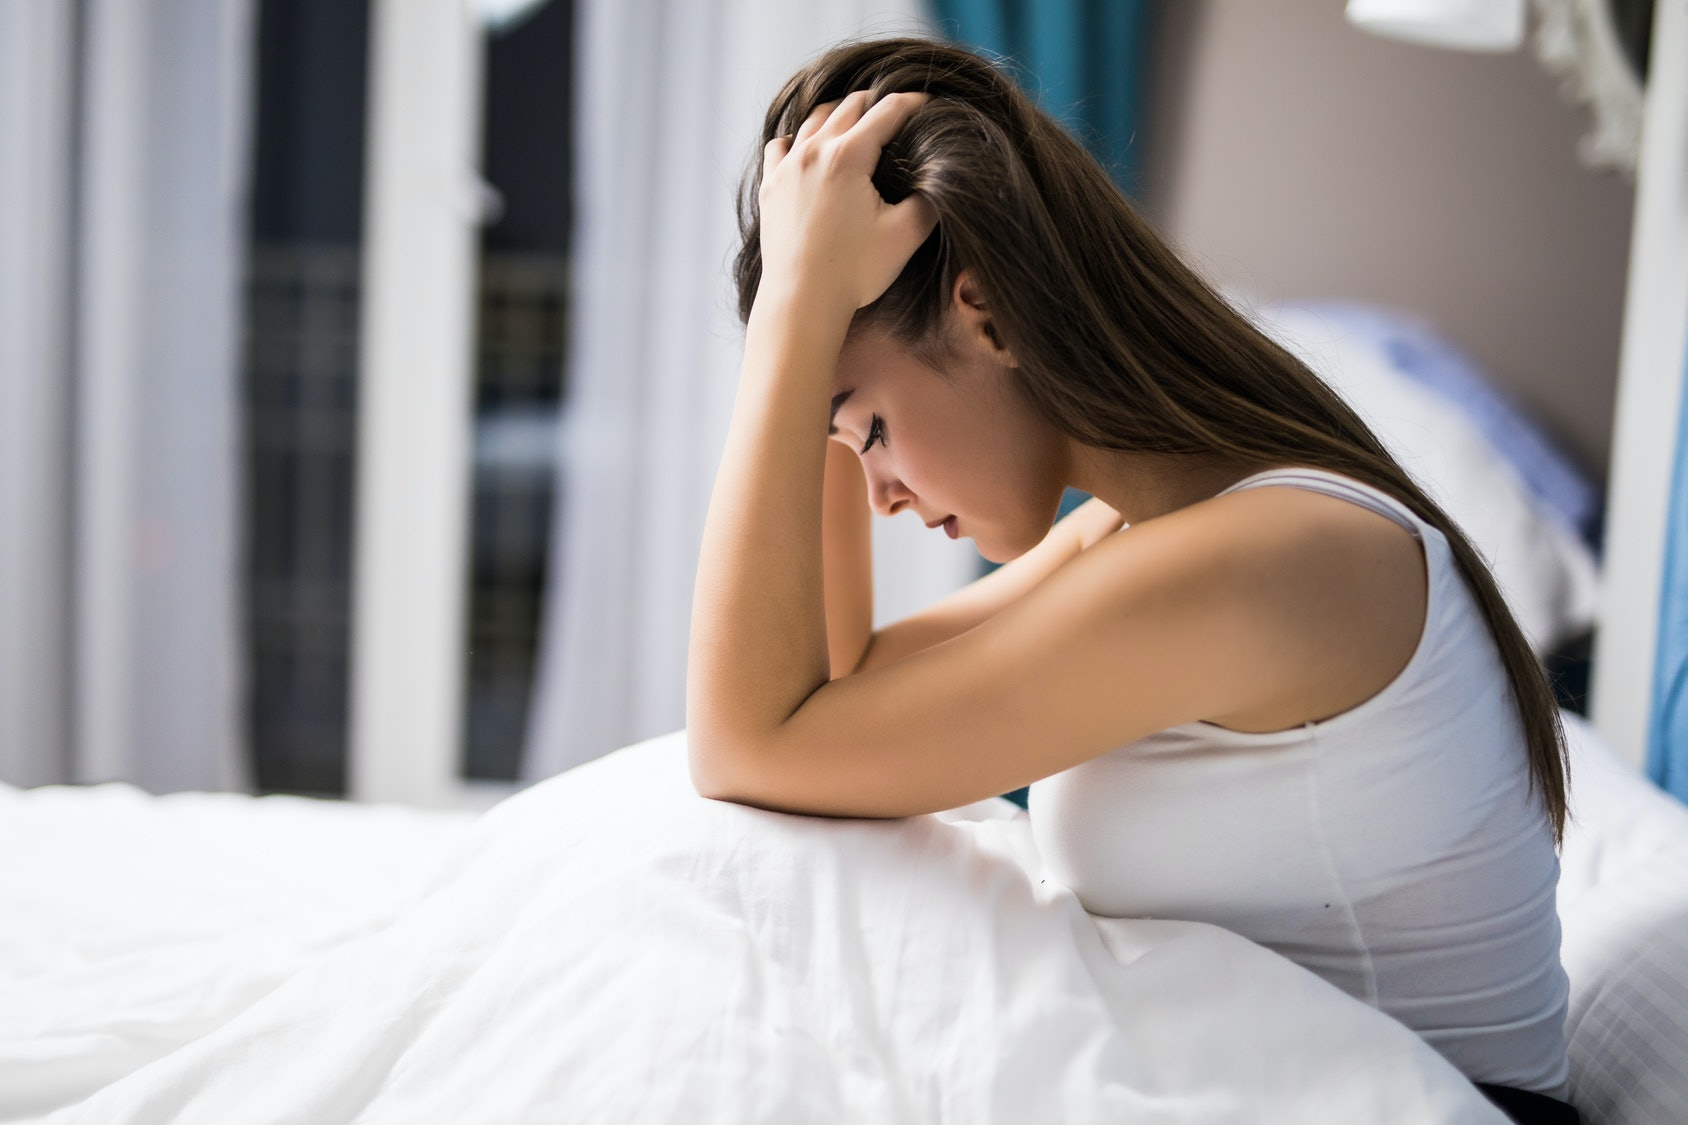 Vagina swollen day after sex